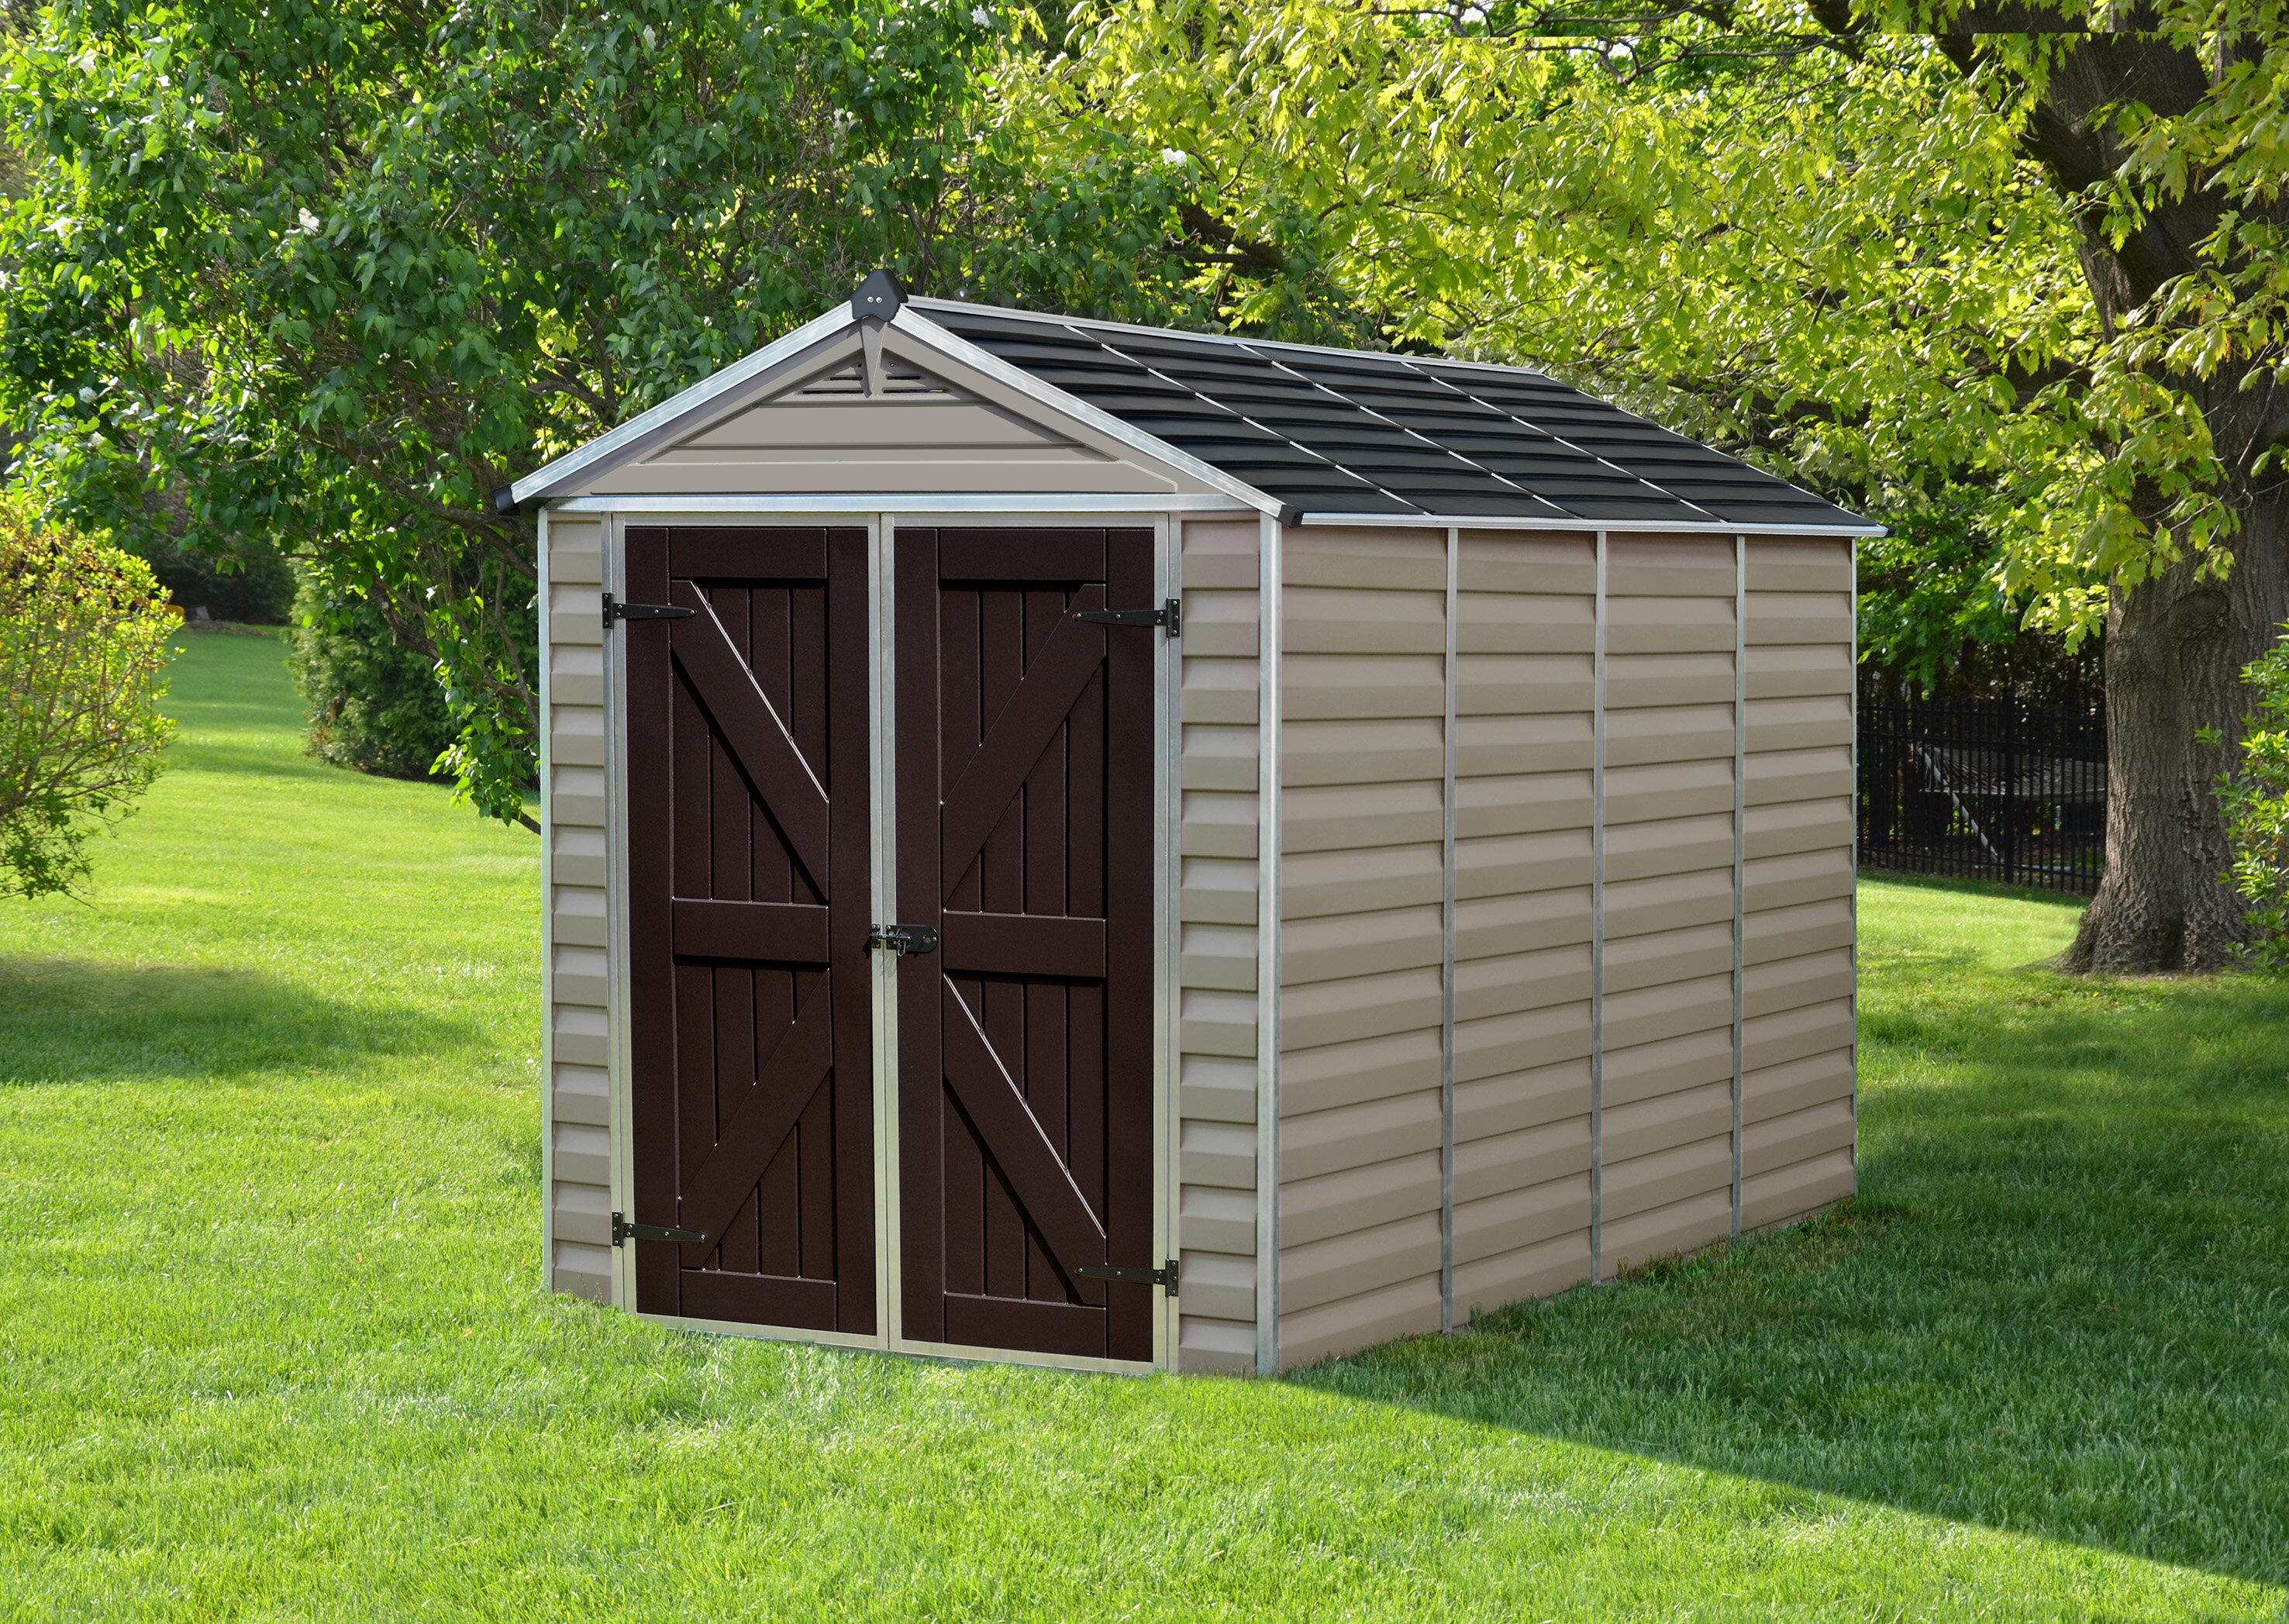 cabinets yourself it kit storage garden do patio sheds keter outdoor gardenwood x plastic plans shed